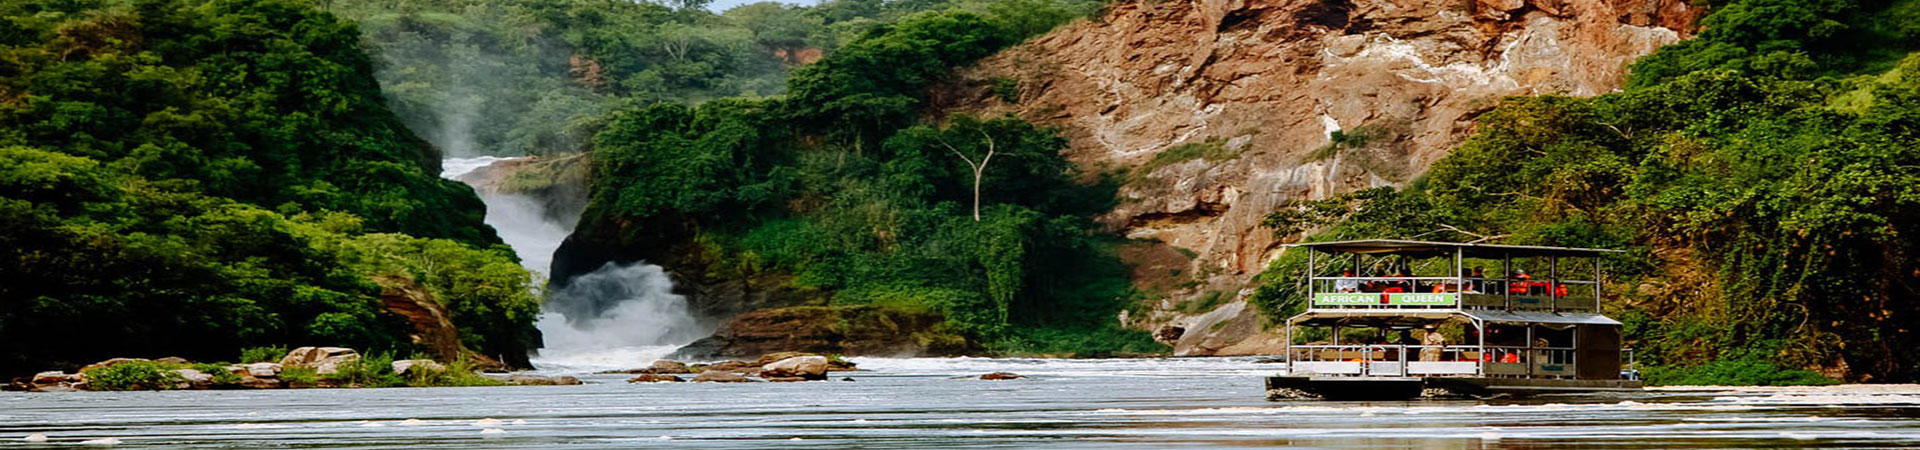 Murchison-Falls-National-Park-8-Days-Uganda-Safaris